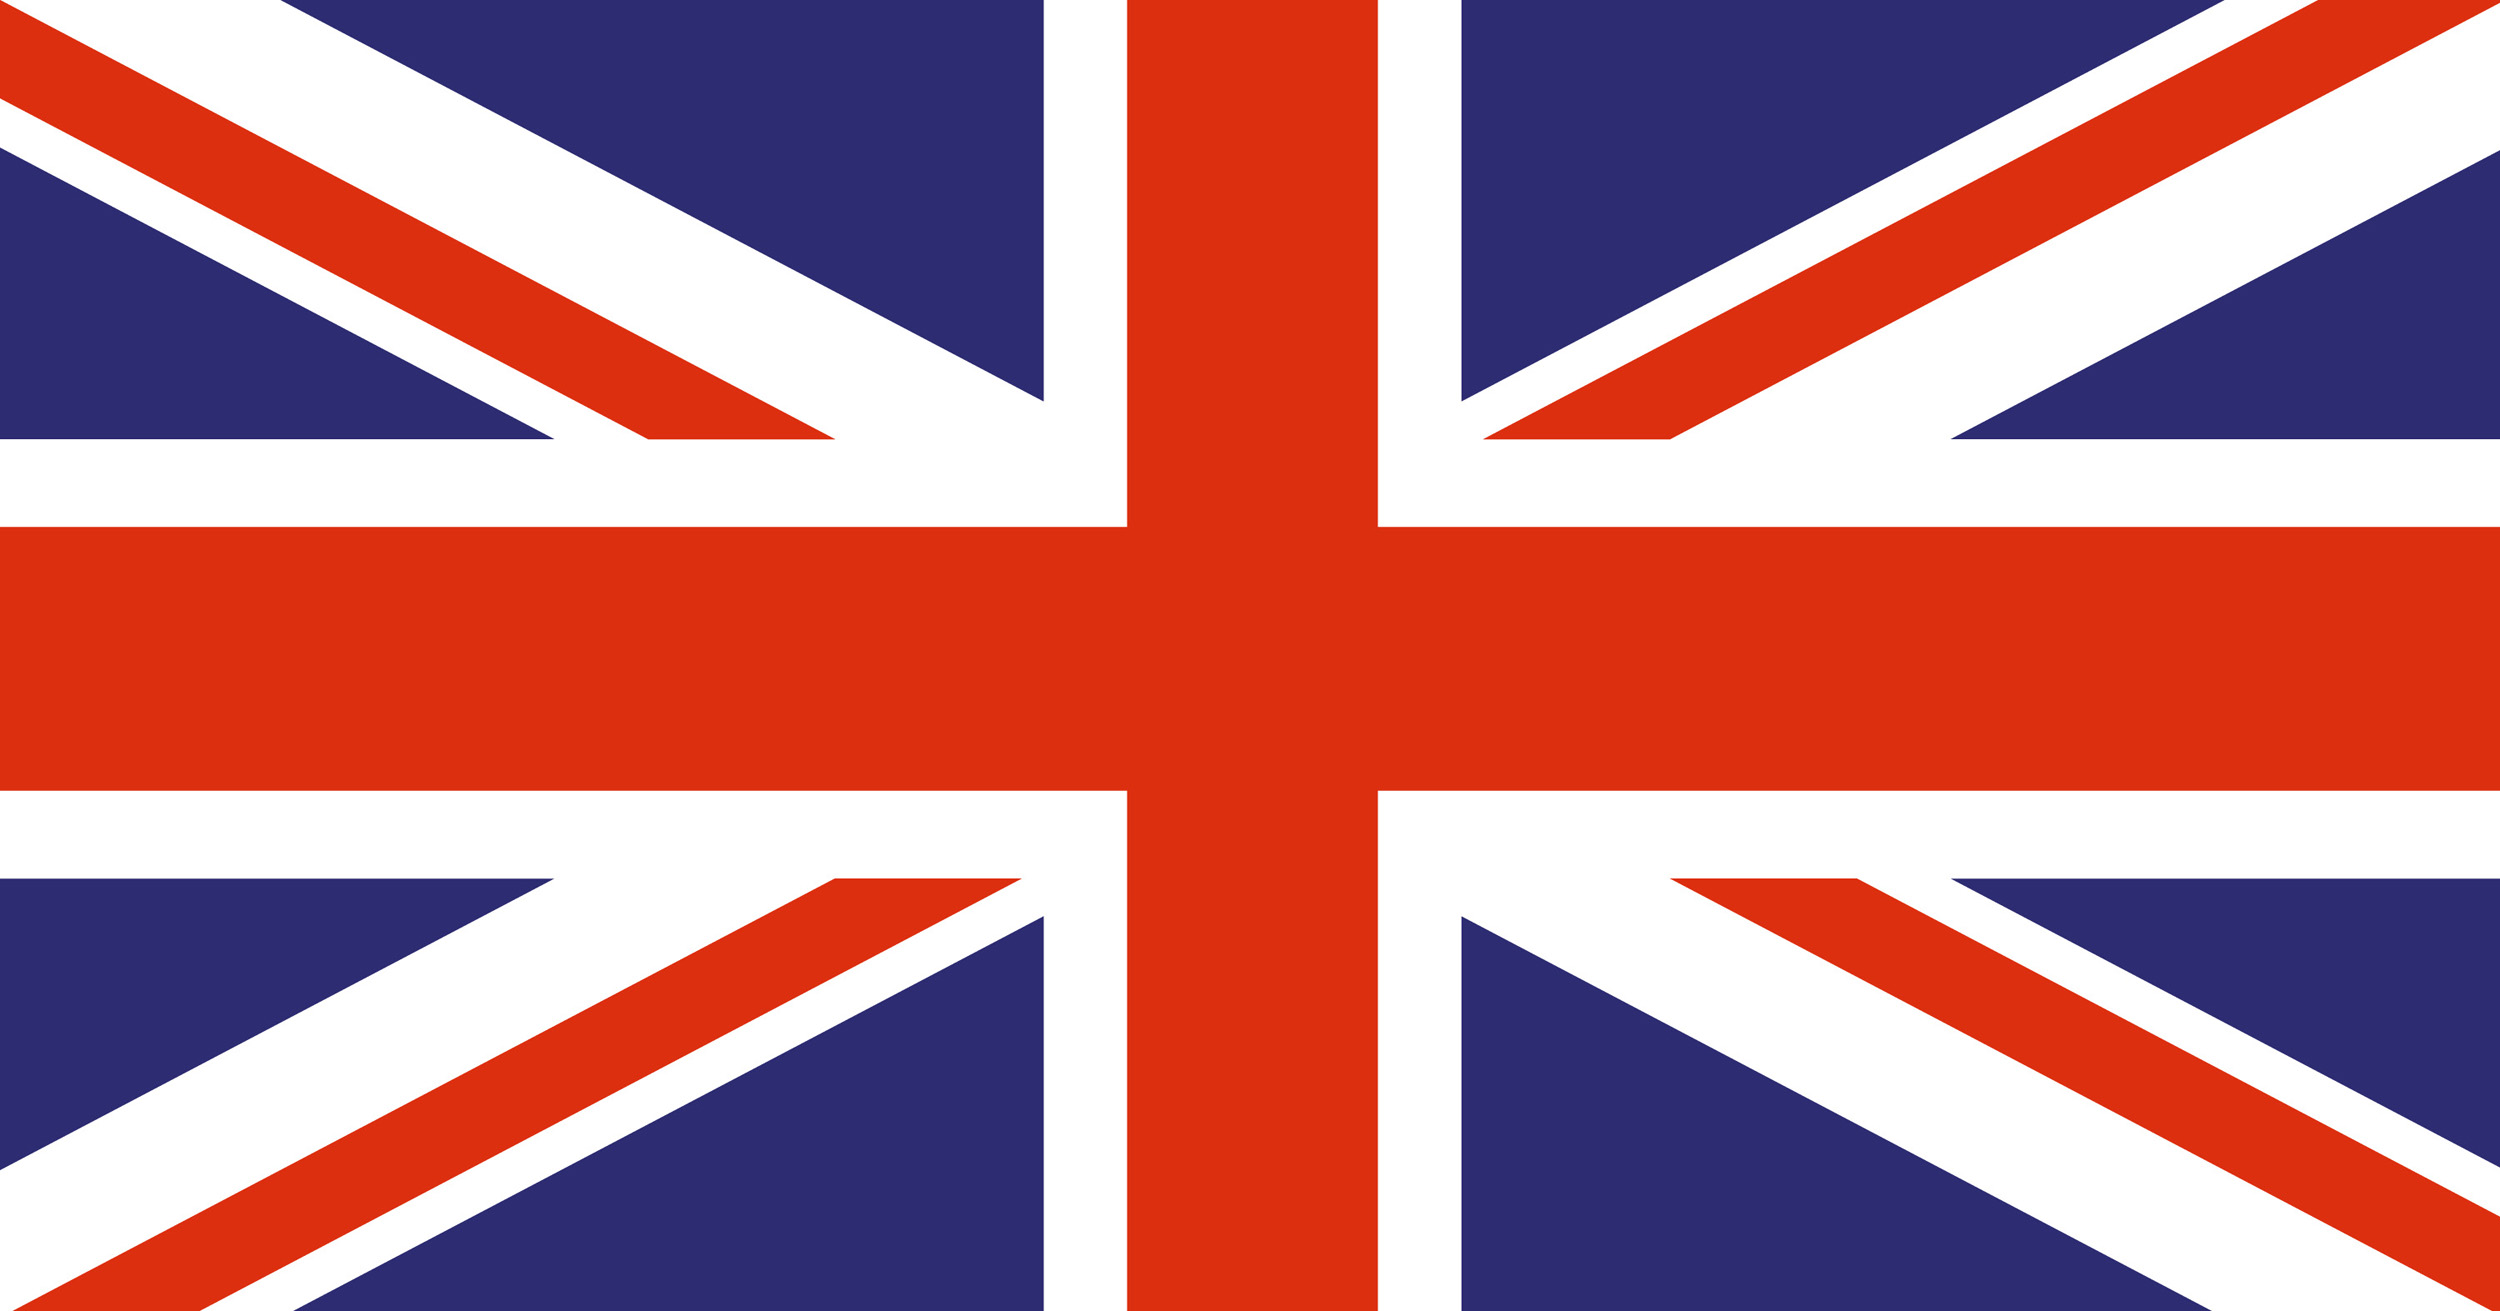 UK Union Flag Desktop Wallpaper iskincouk 2500x1311